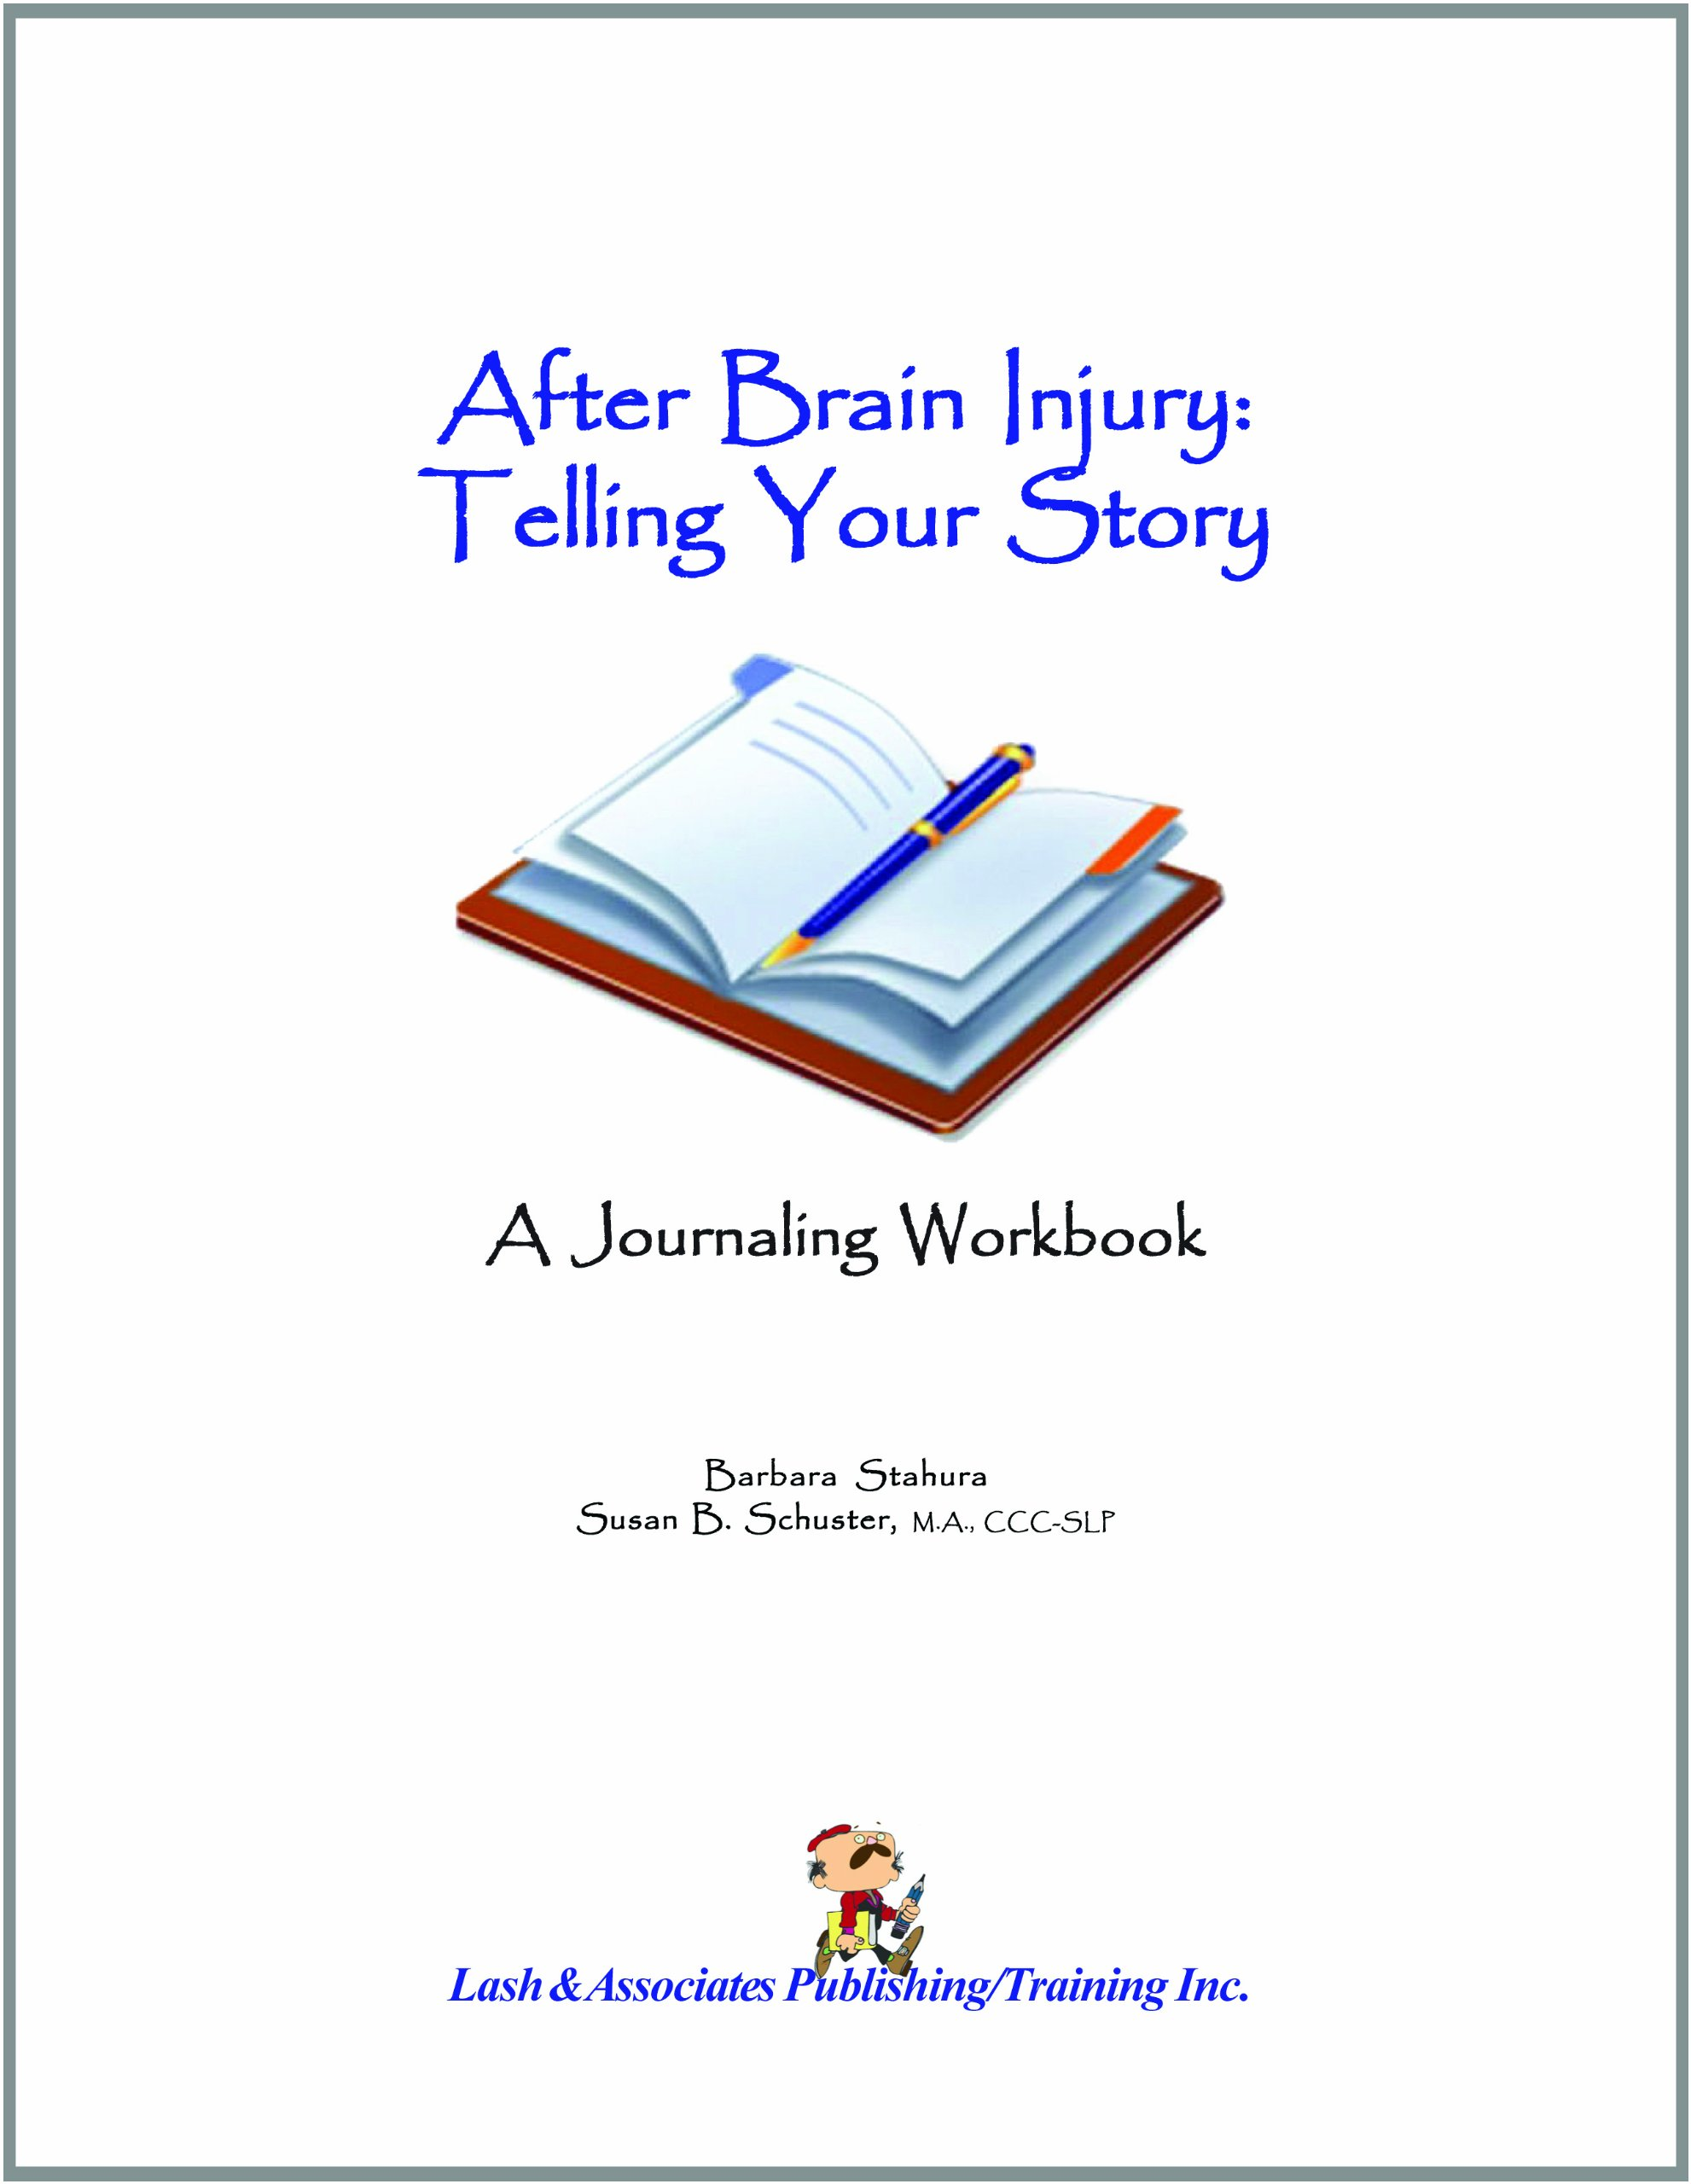 Download After Brain Injury Telling Your Story, A Journaling Workbook pdf